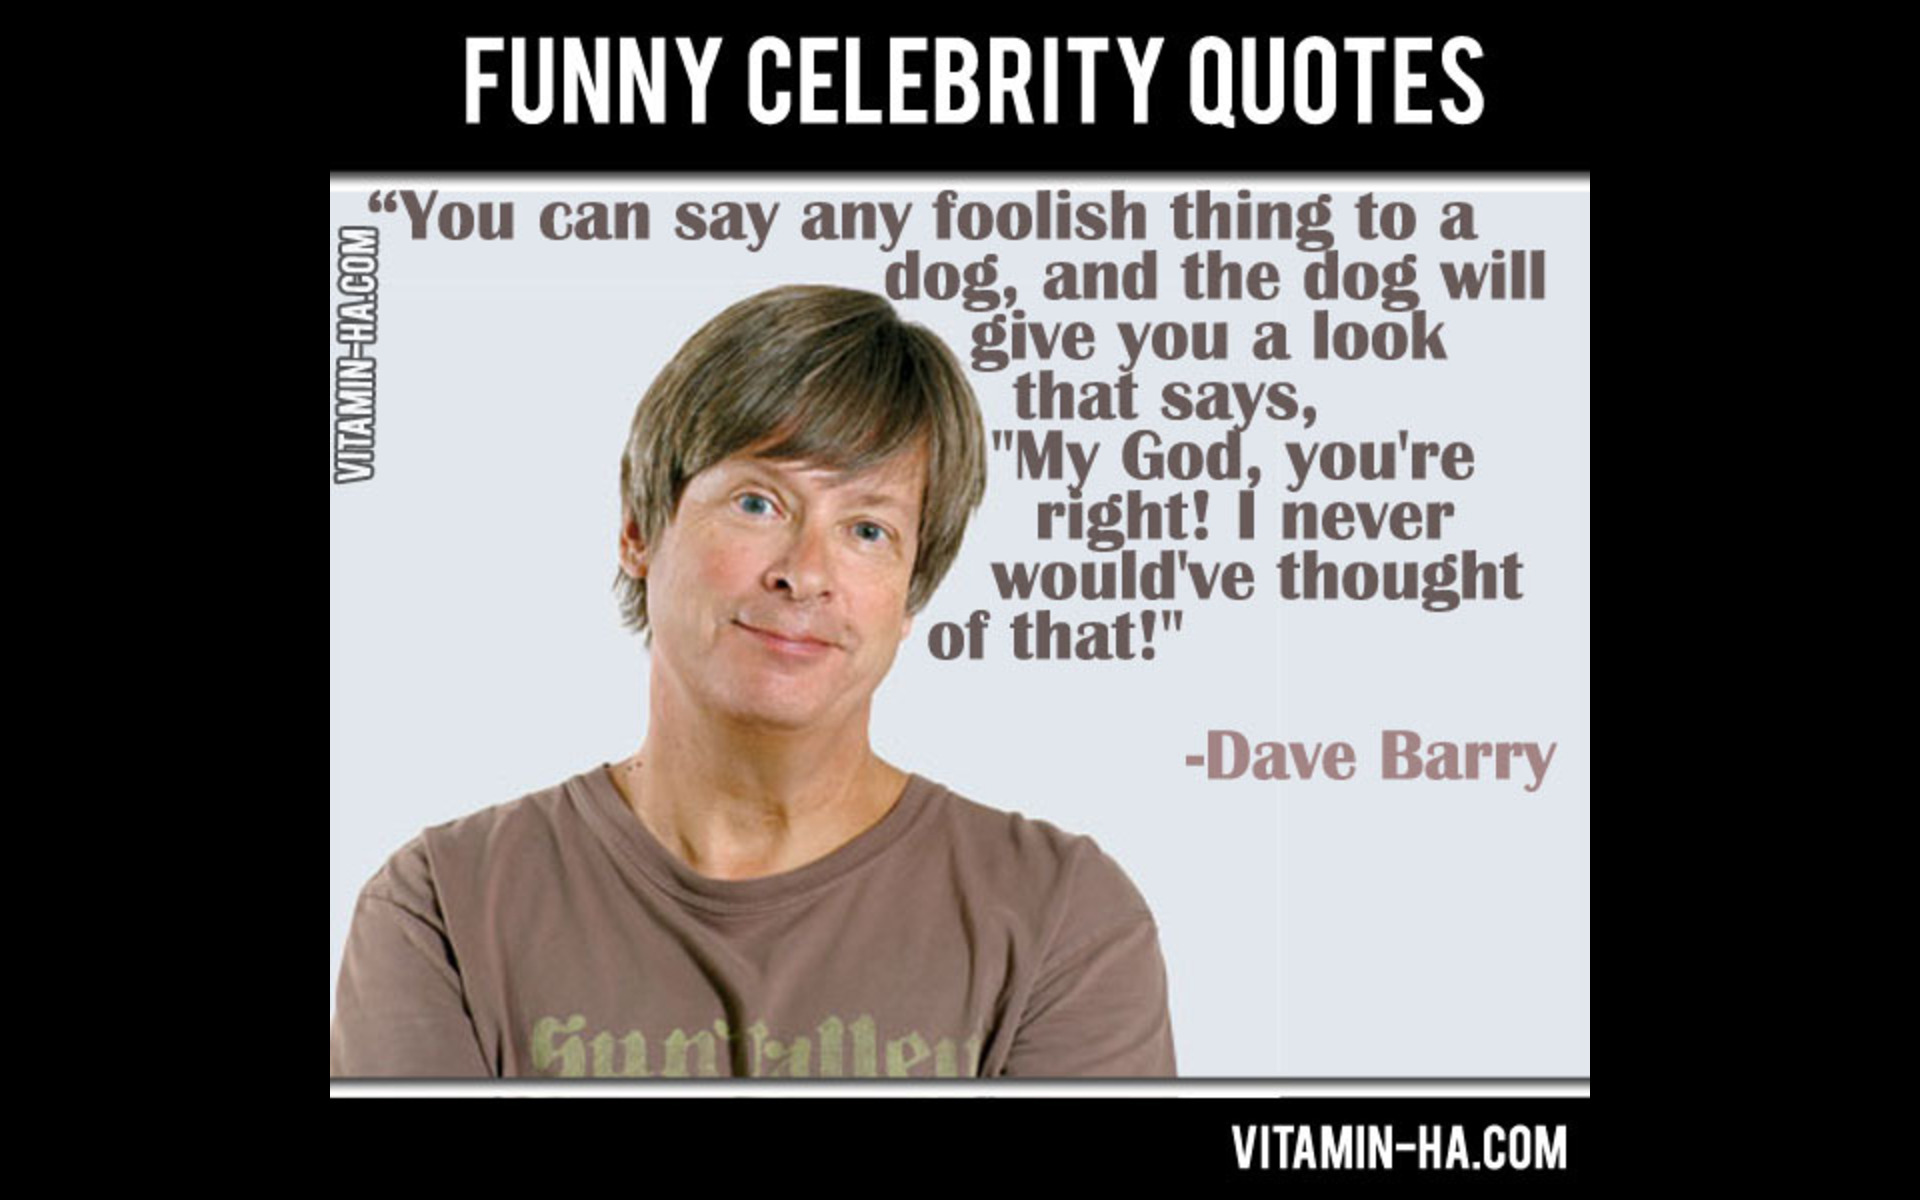 Funny Celebrity Quotes - YouTube